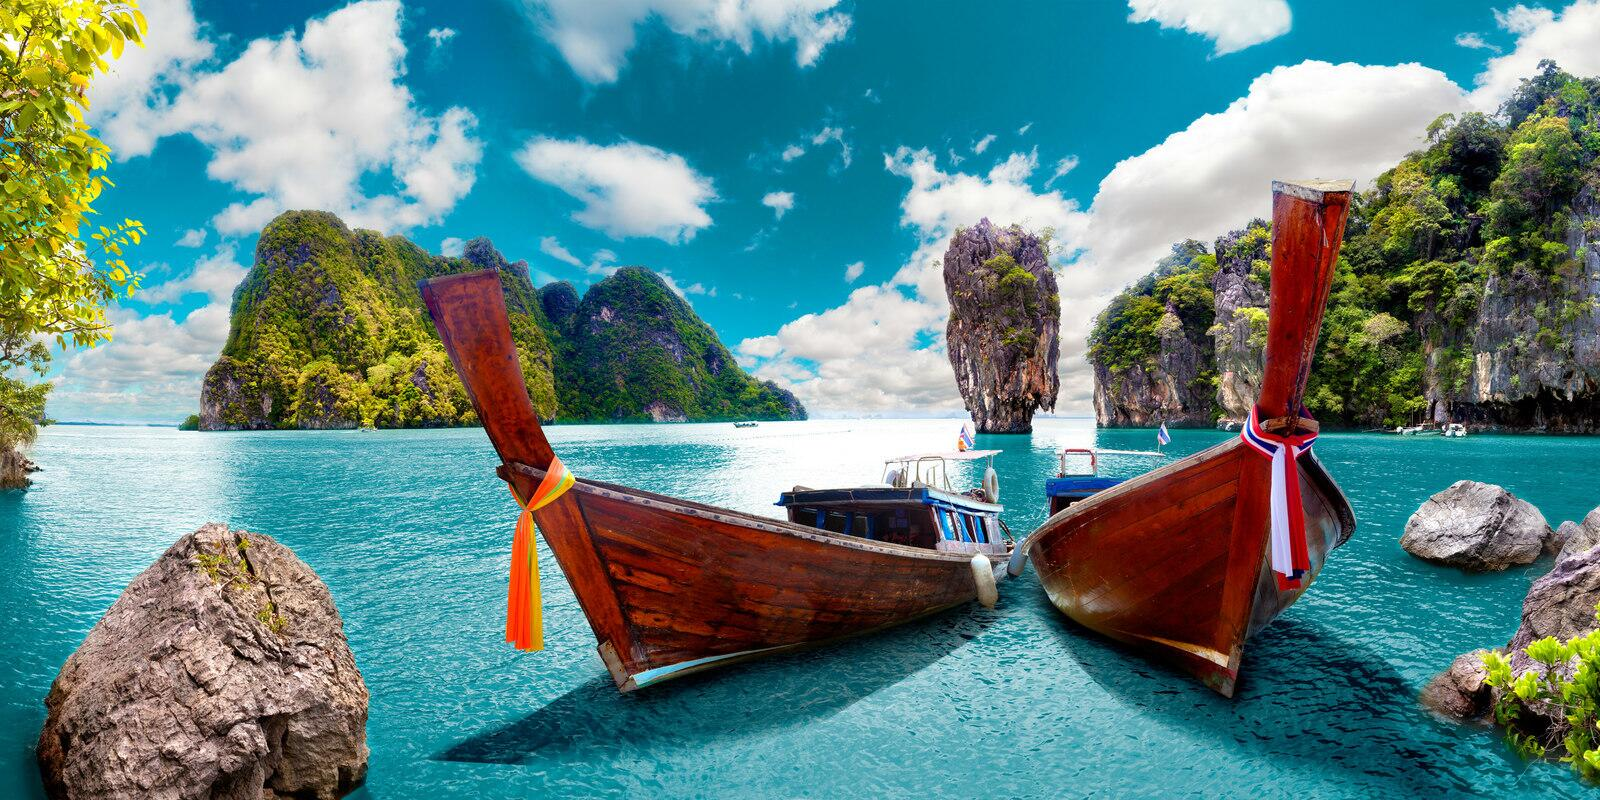 Premium Cruise 8 days on a Catamaran with hostess in Thailand - All Inclusive